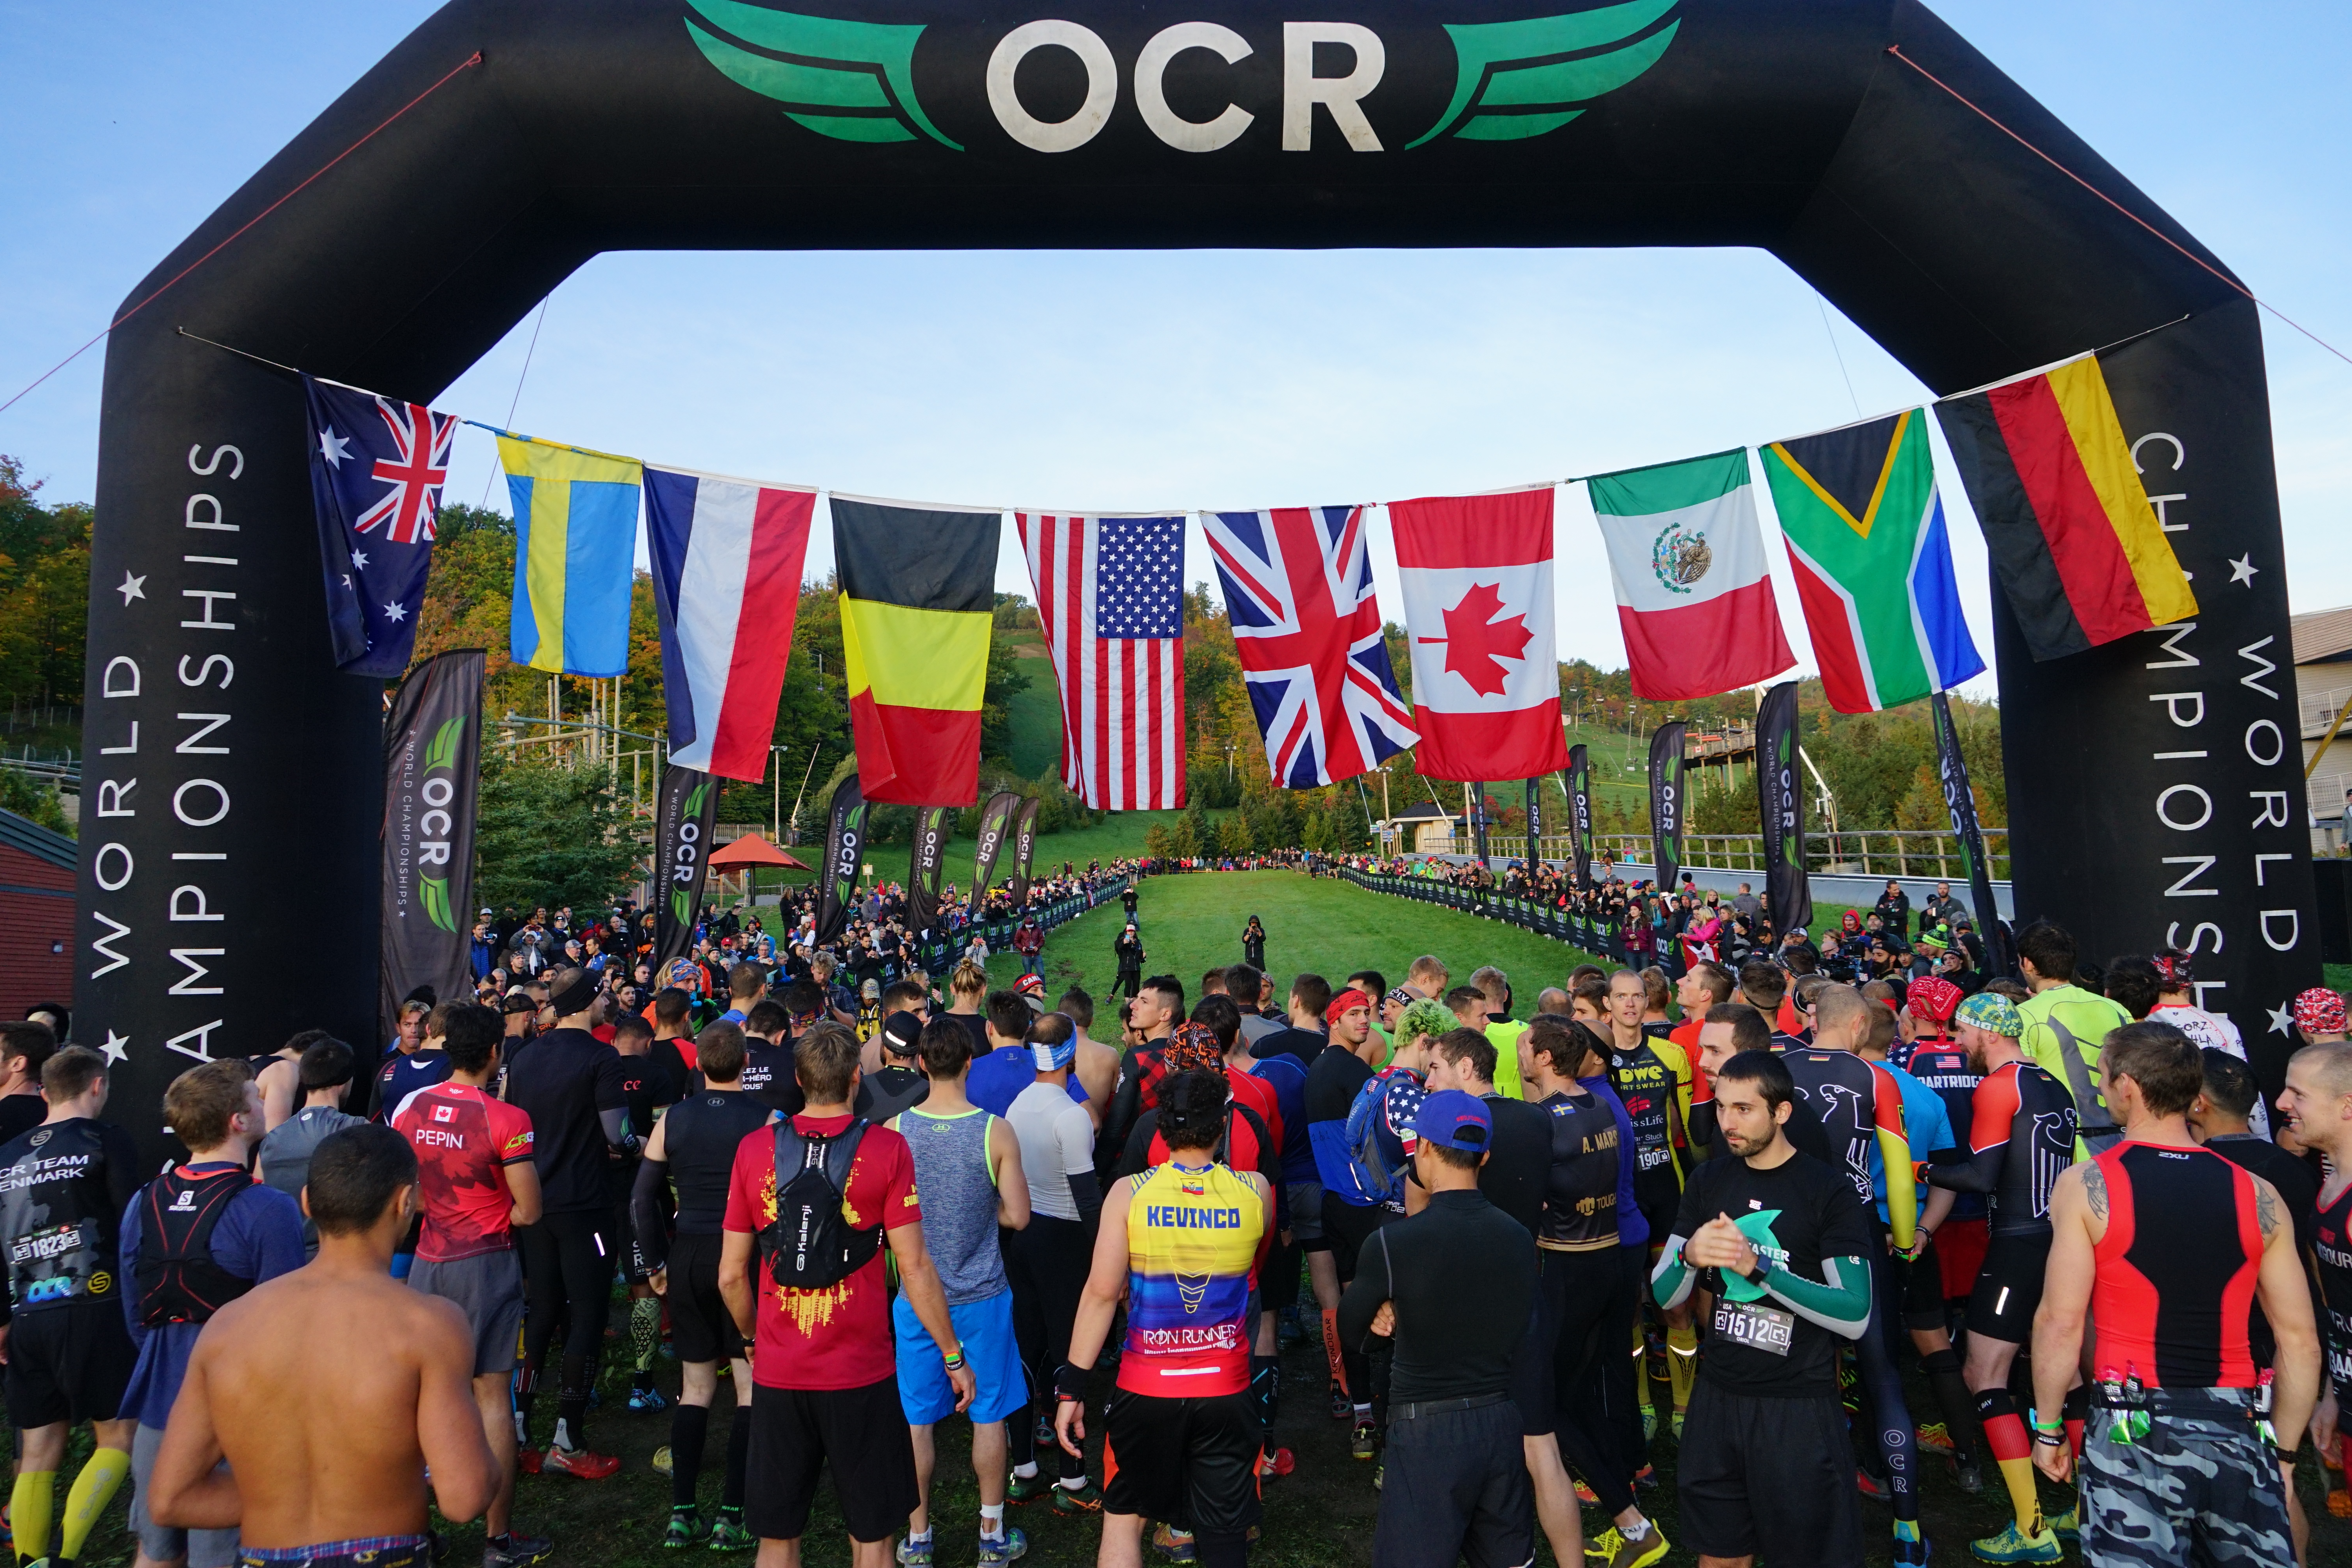 OCR world Championships Coverage